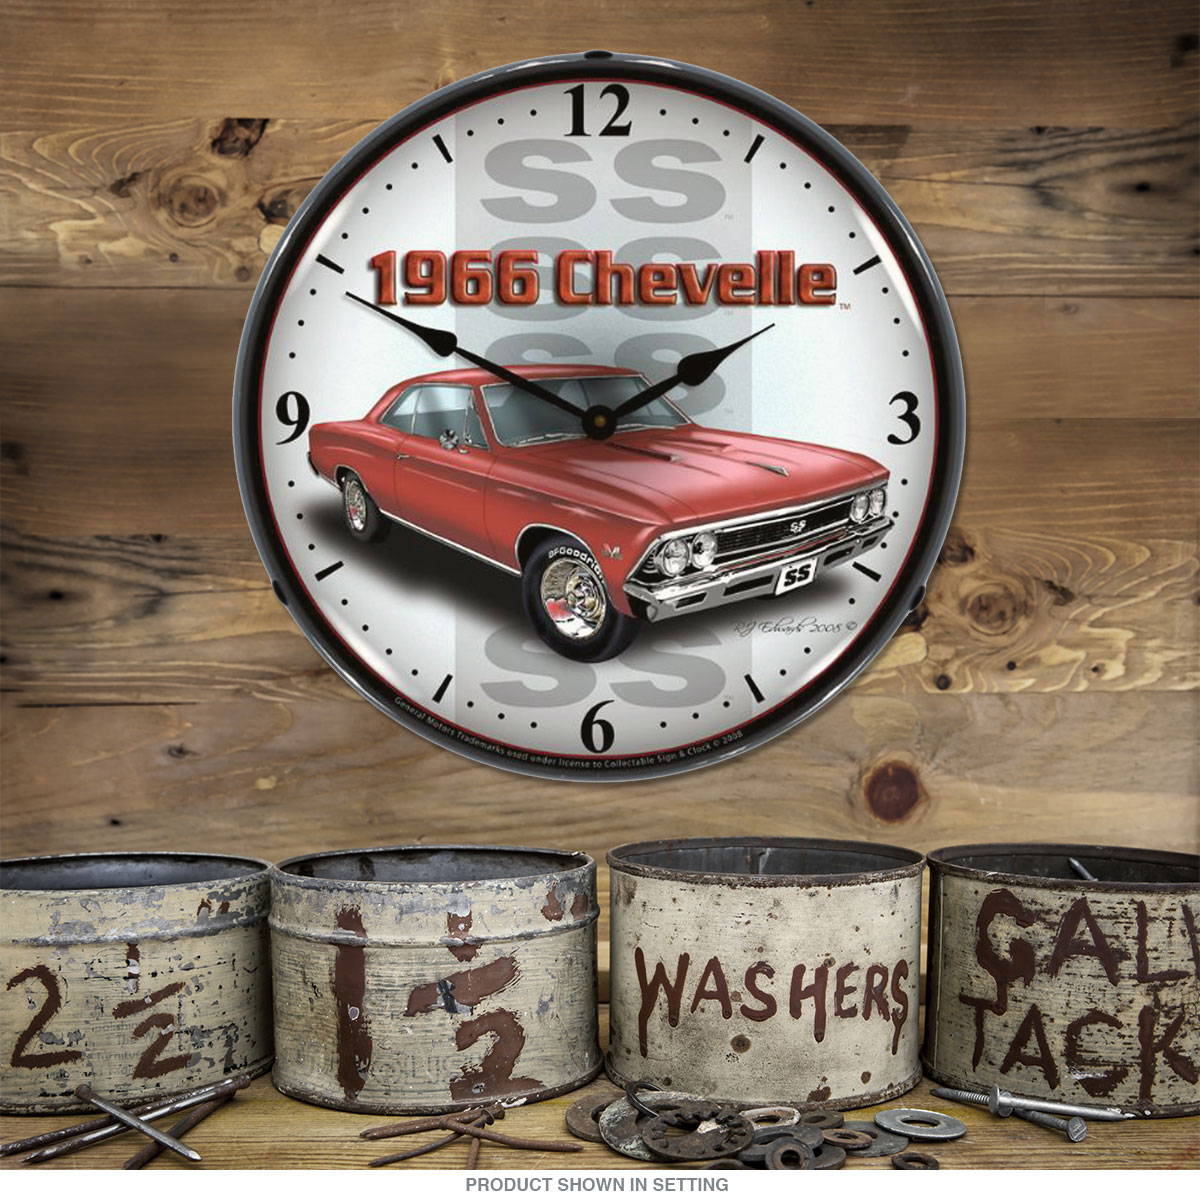 Chevrolet 1966 Chevelle SS Red Light Up Garage Clock